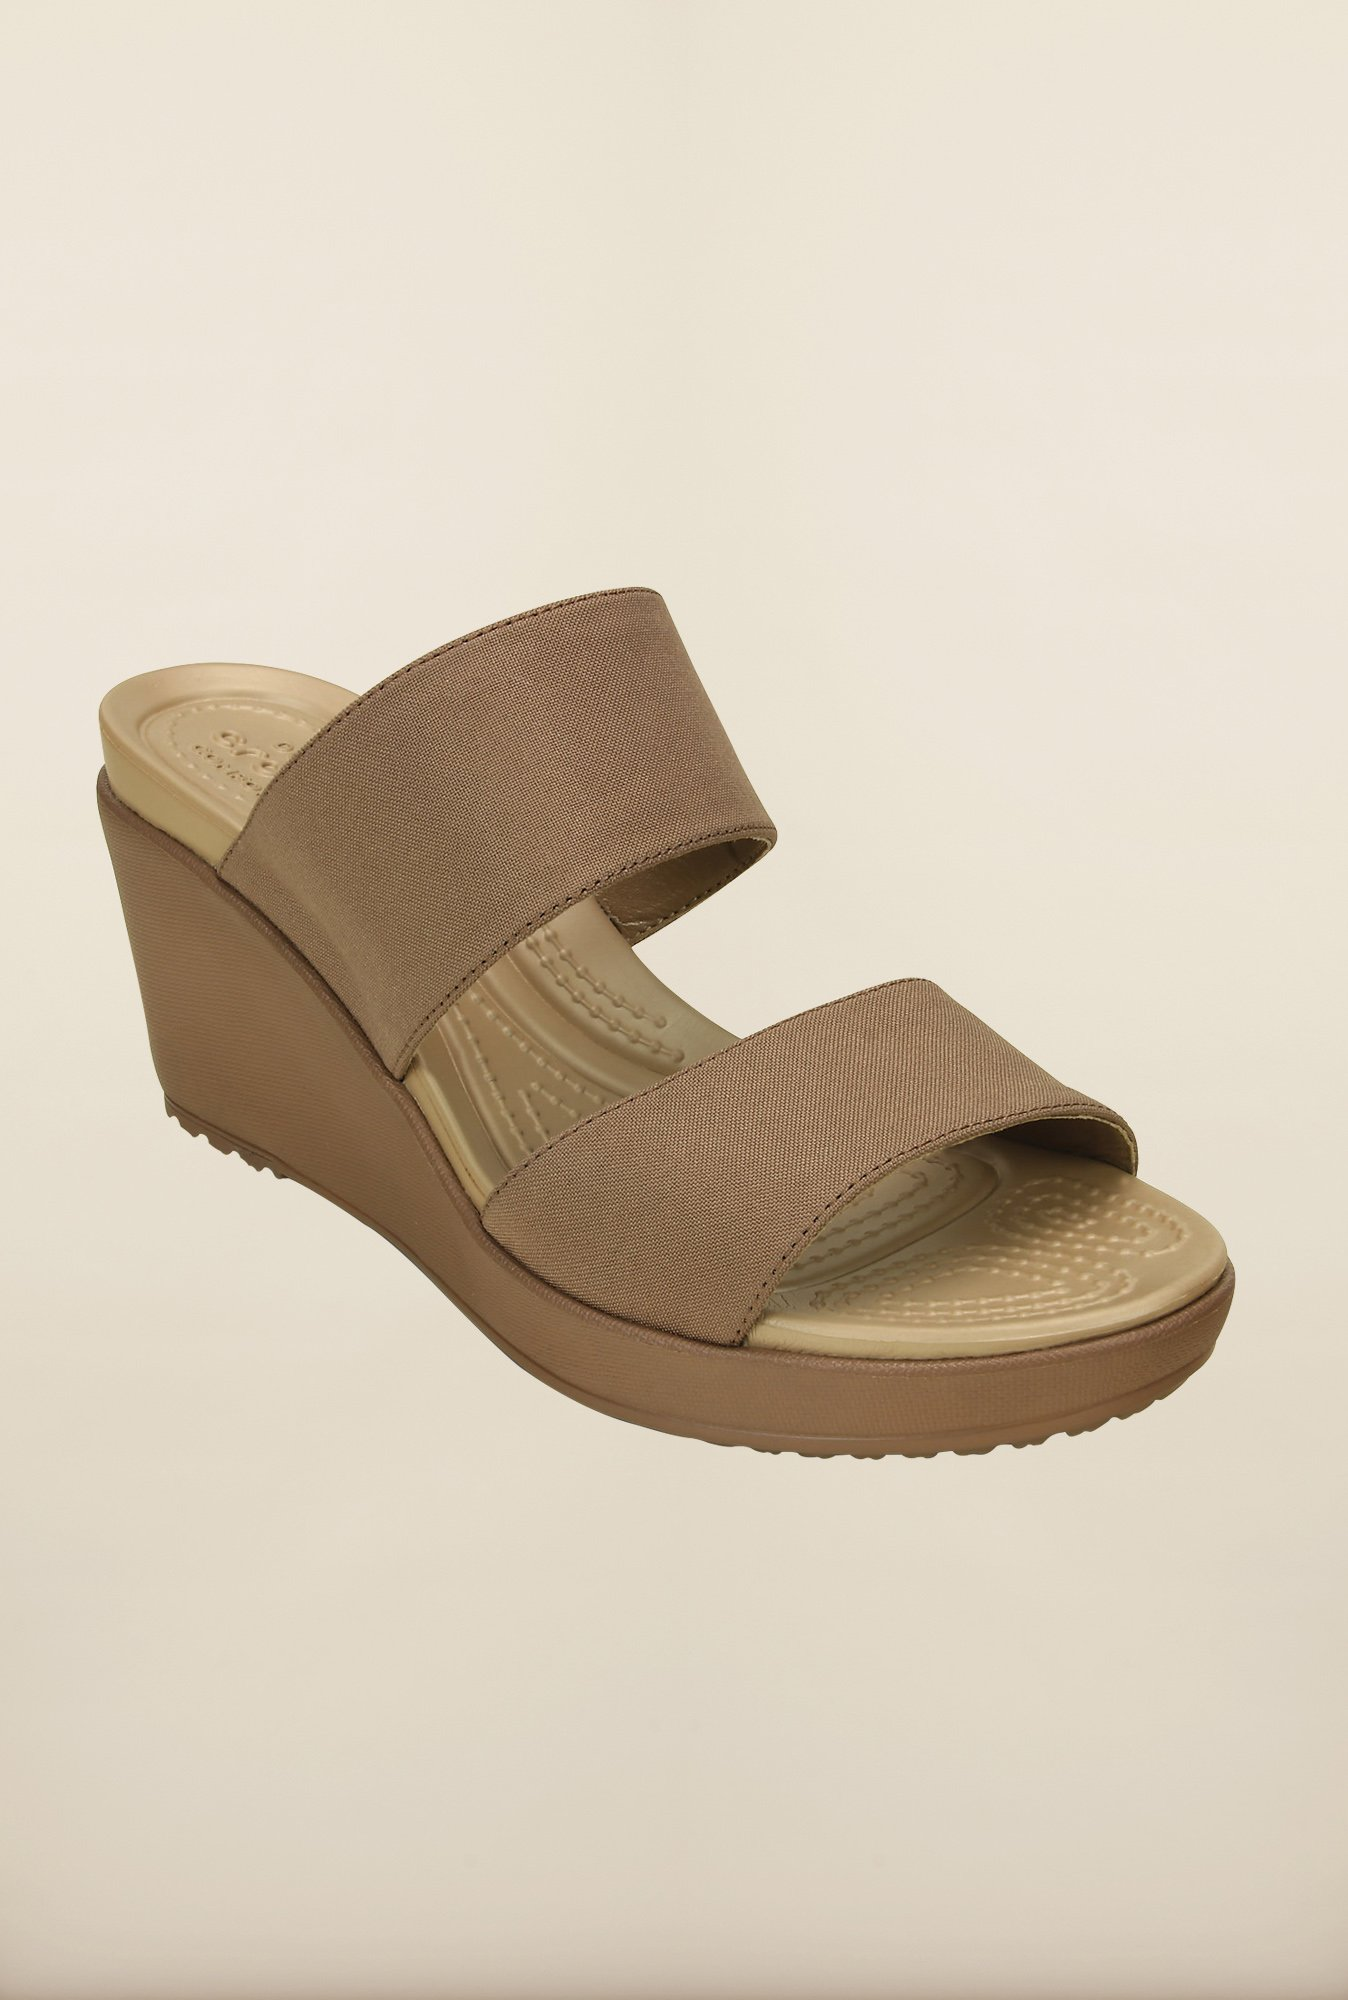 Crocs Leigh II Bronze Wedges